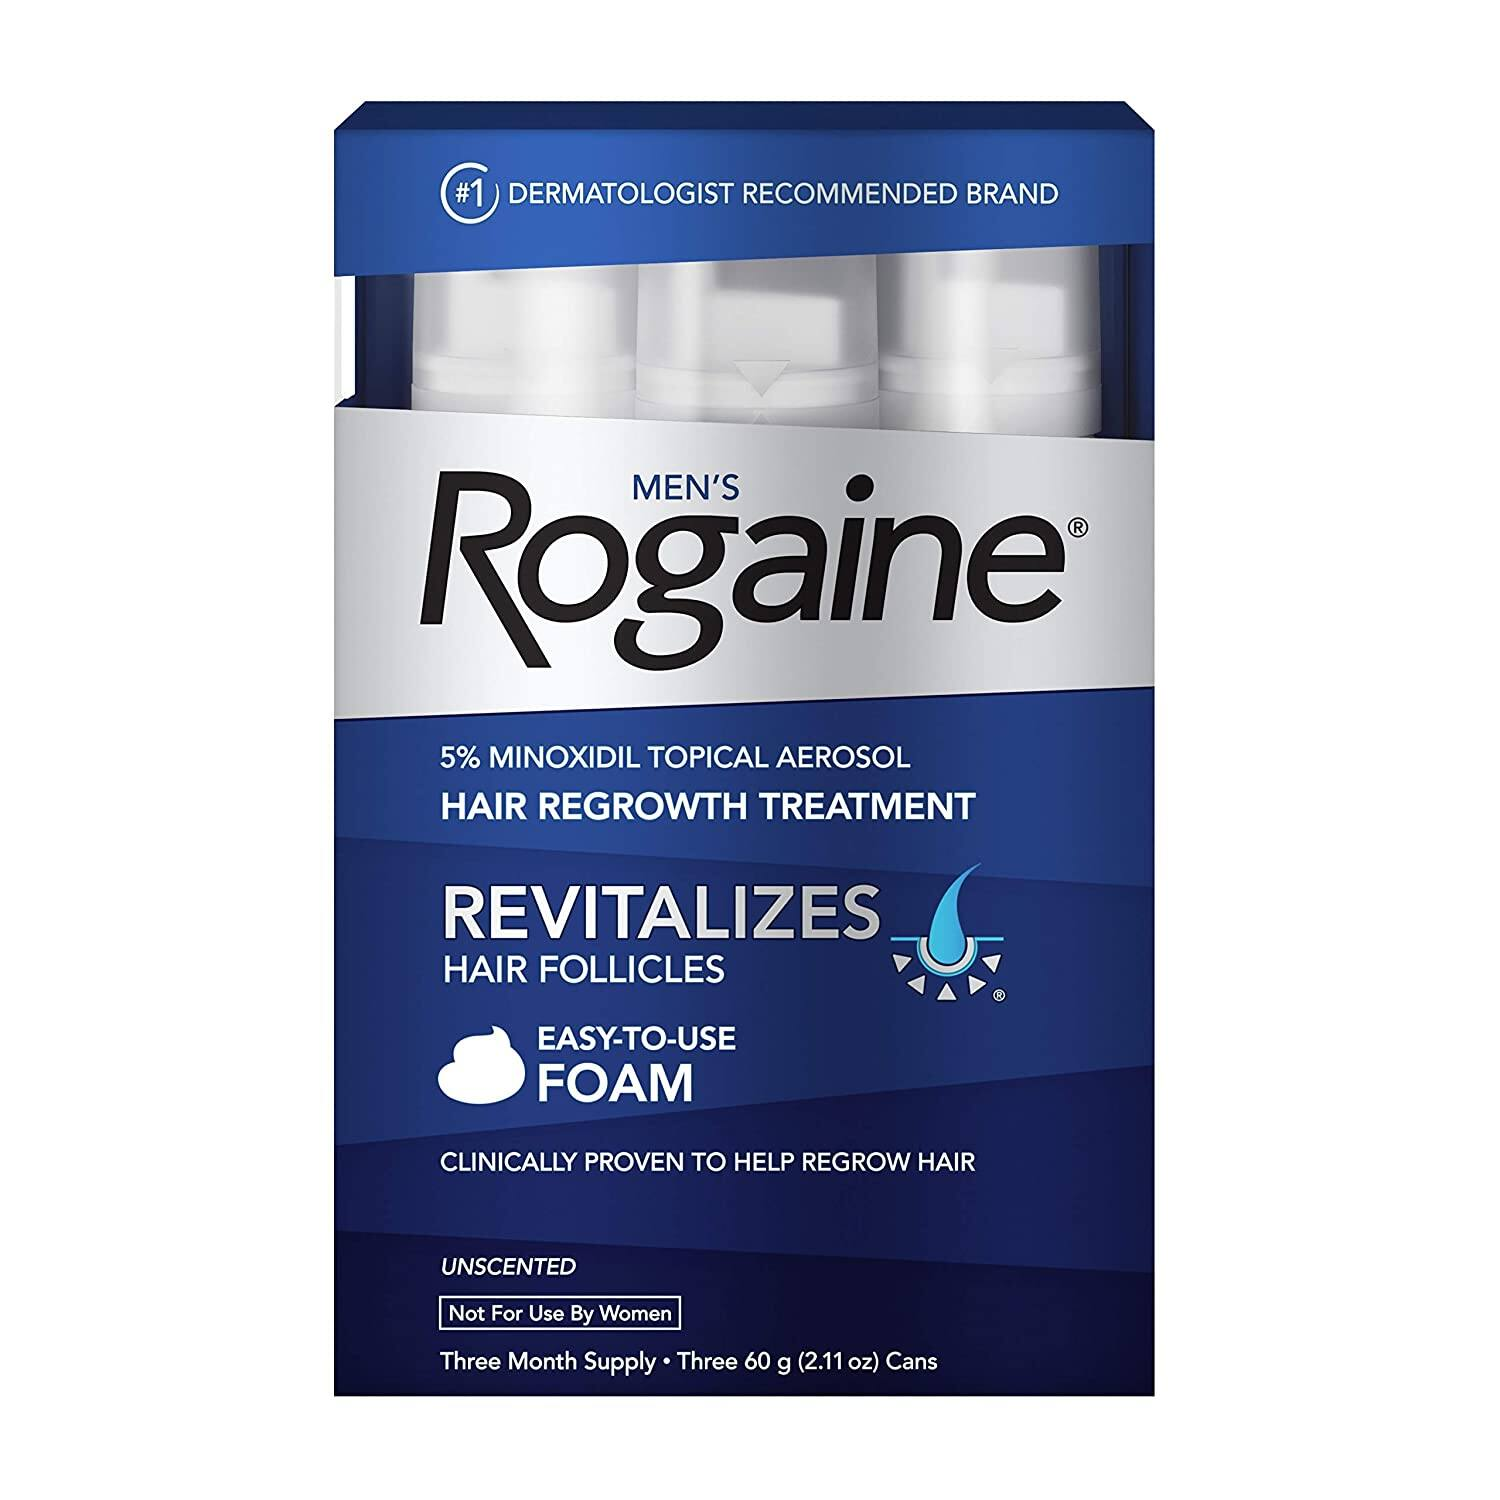 3-Pack of 2.11oz Men's Rogaine 5% Minoxidil Foam for Hair Loss & Hair Regrowth